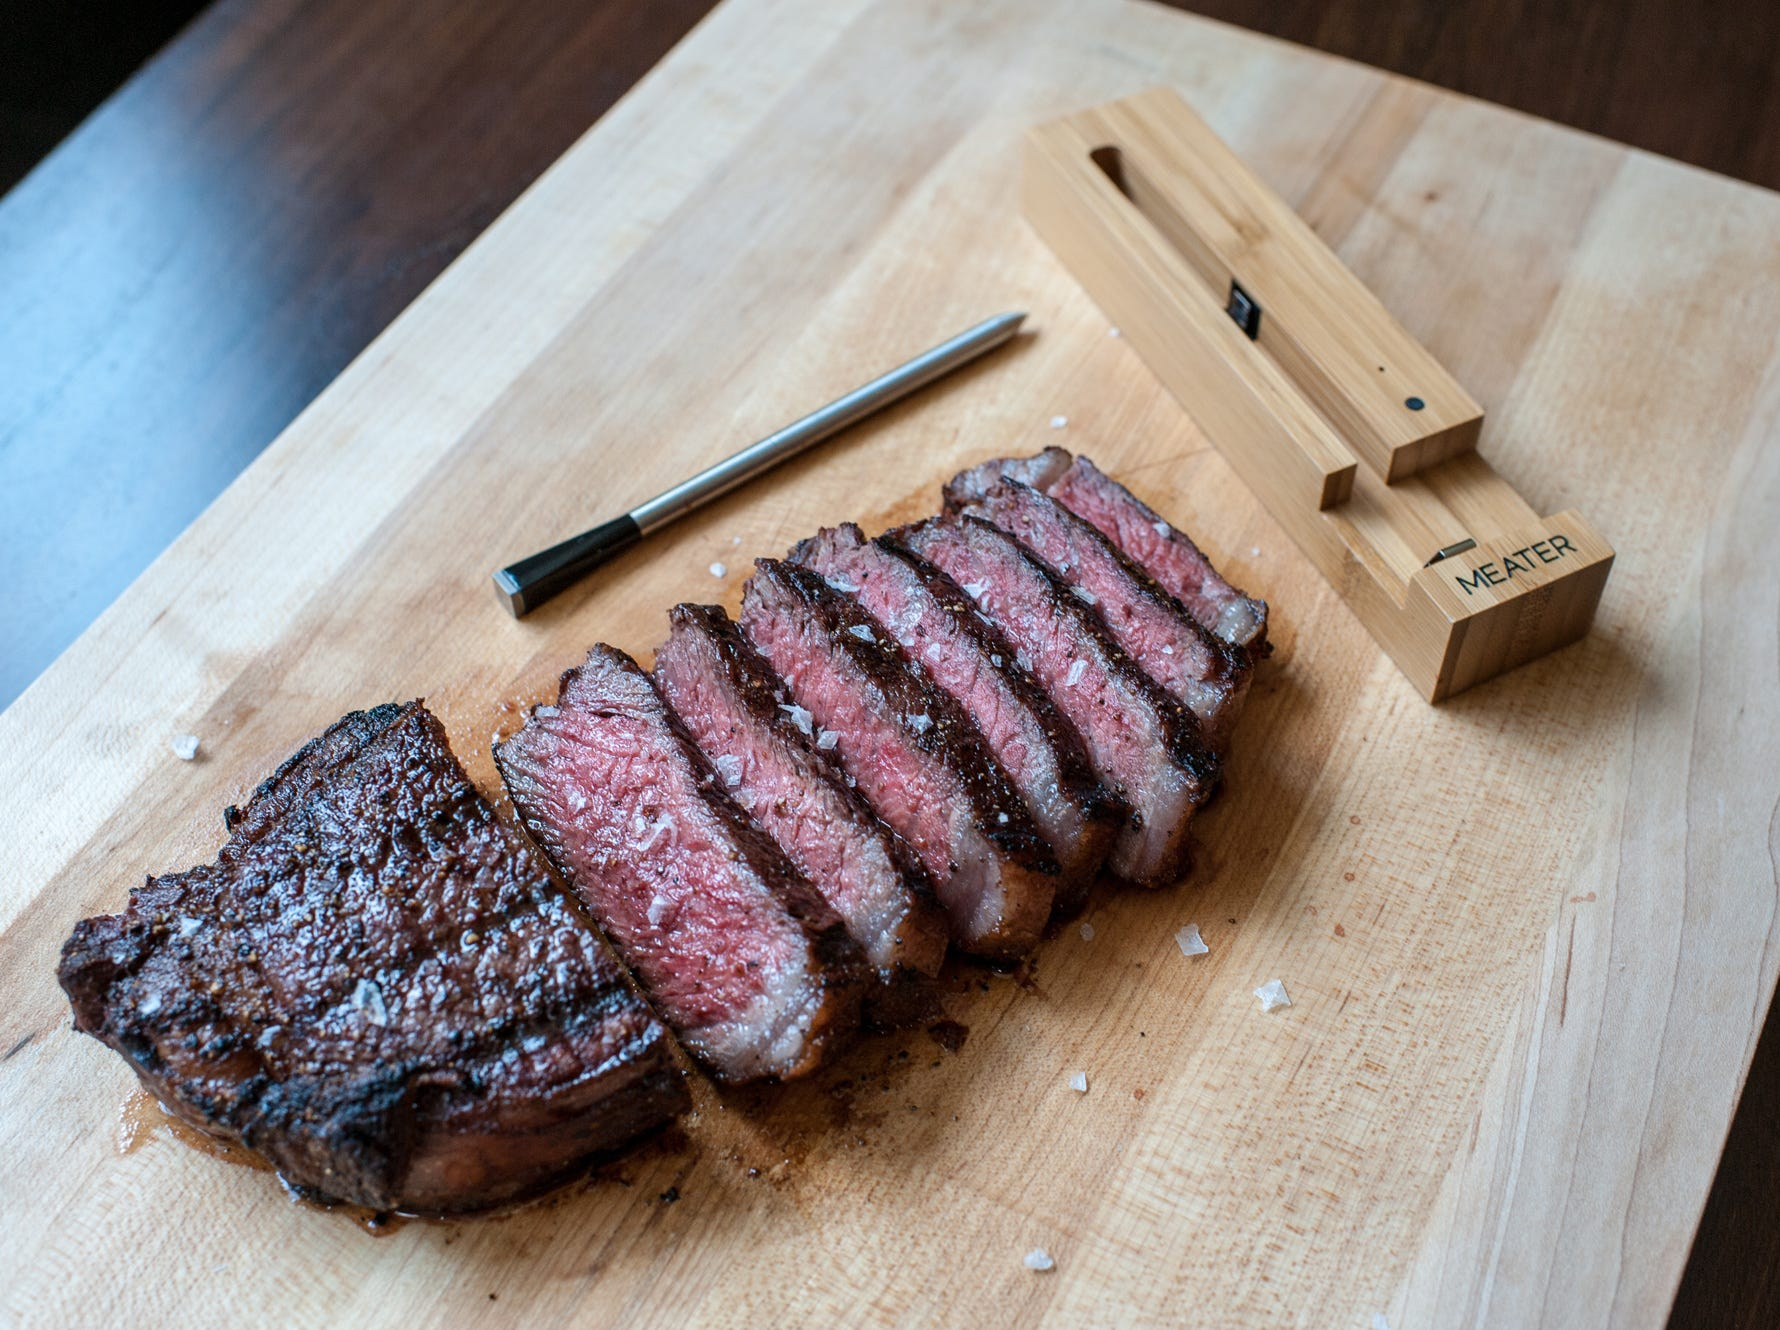 Meater Wireless Meat Thermometer, $69  and $99 models. For use with grill, oven or the smoker.